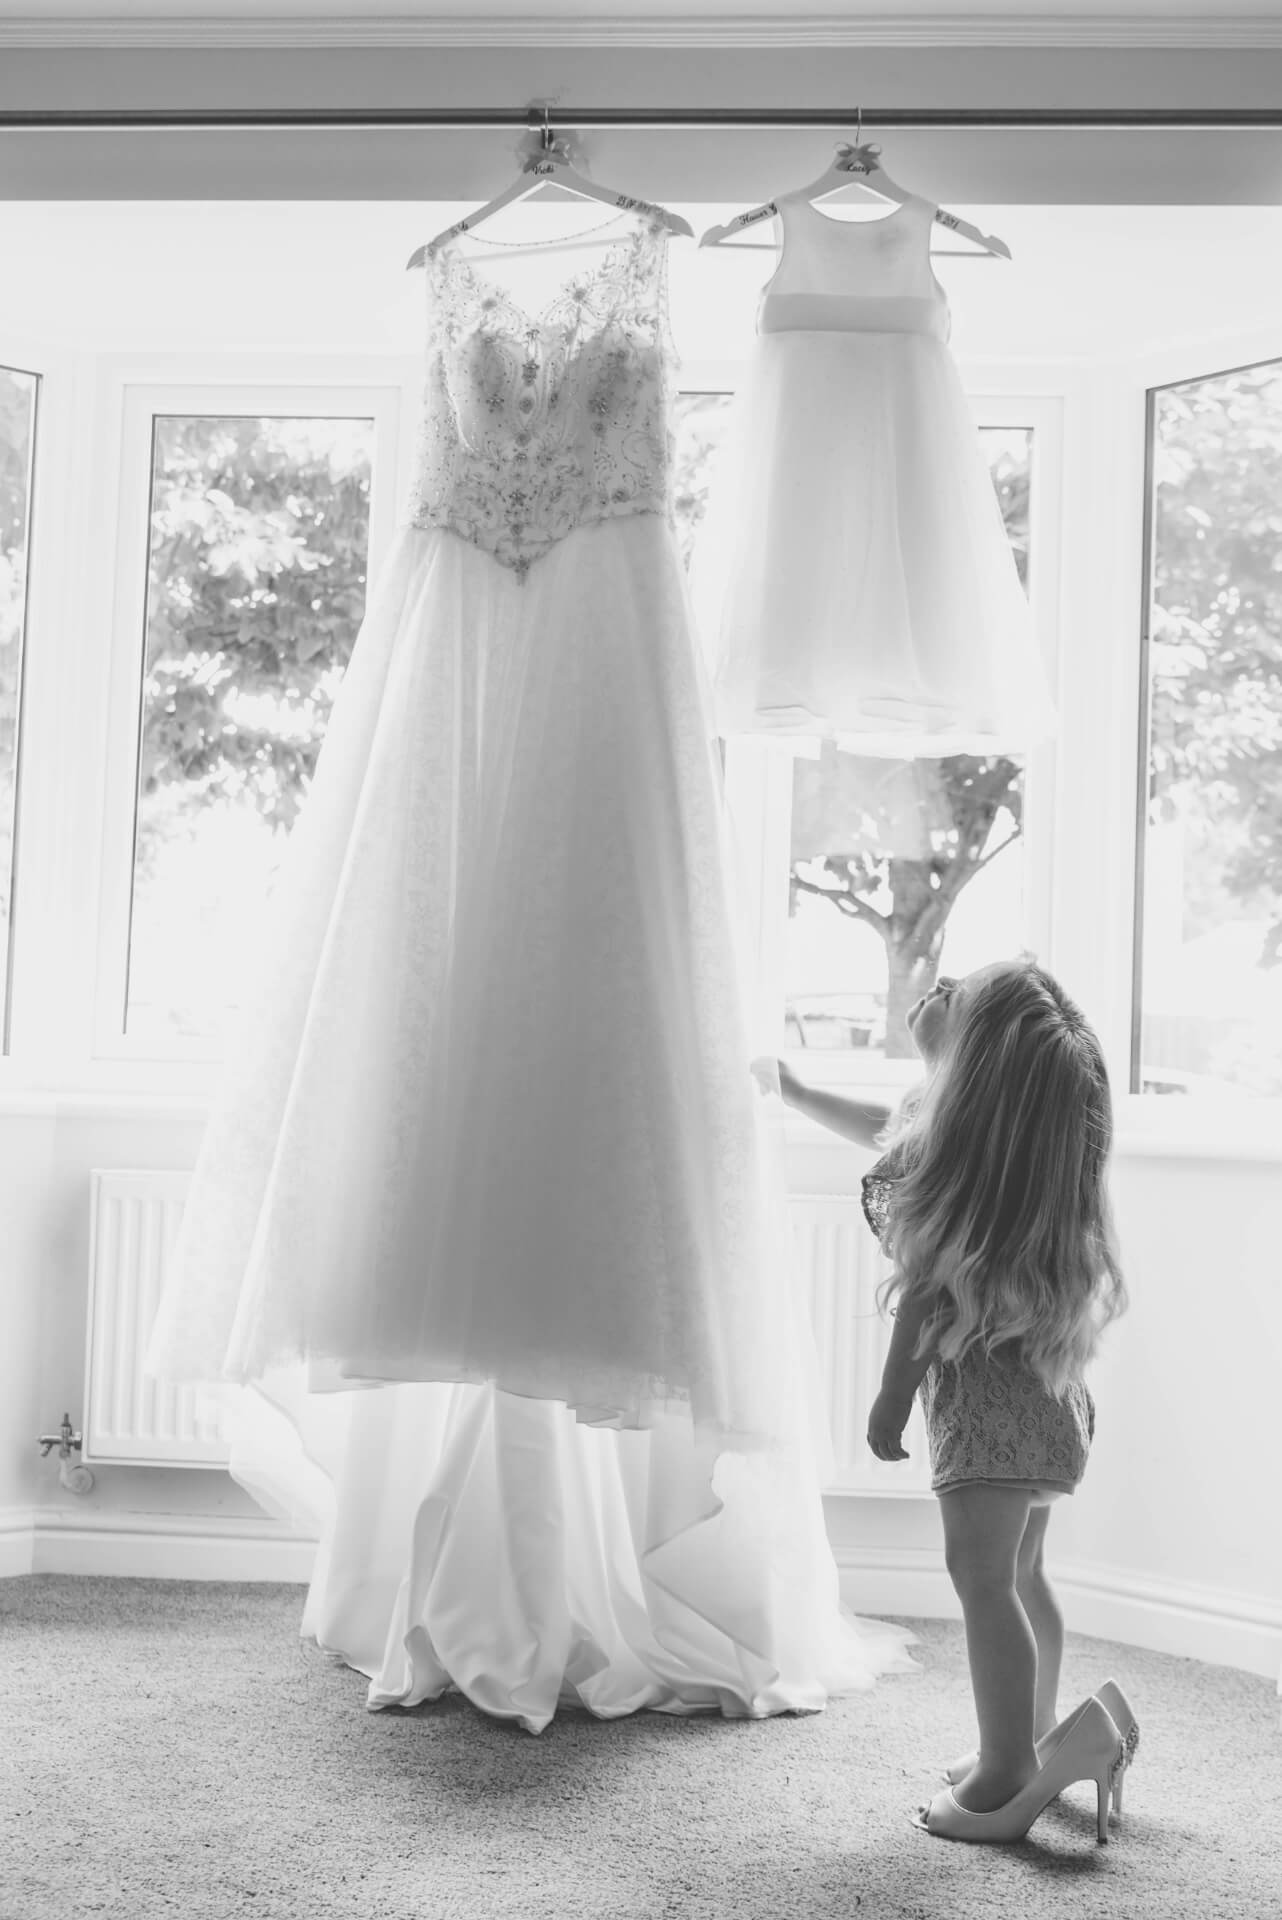 flower girl looking at the wedding dress - natural wedding photography by - Slice of Life Photography